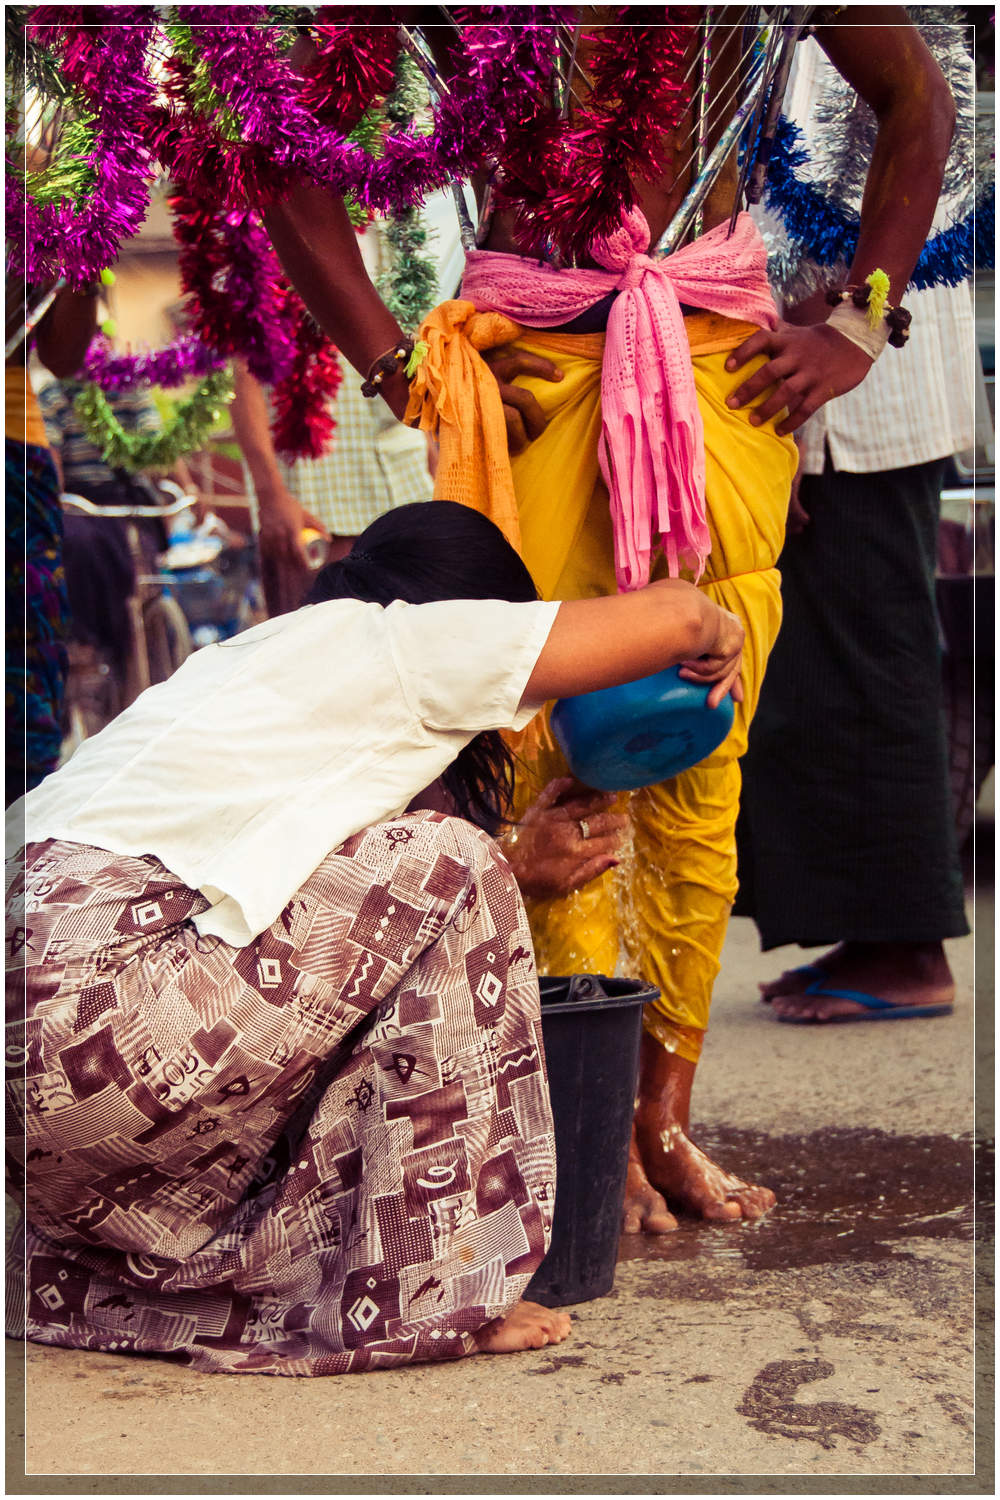 A woman washes the feet of each of the devotees as they pass along the street during the procession in Mawlamyine, Myanmar (Burma). © Dustin Main 2013